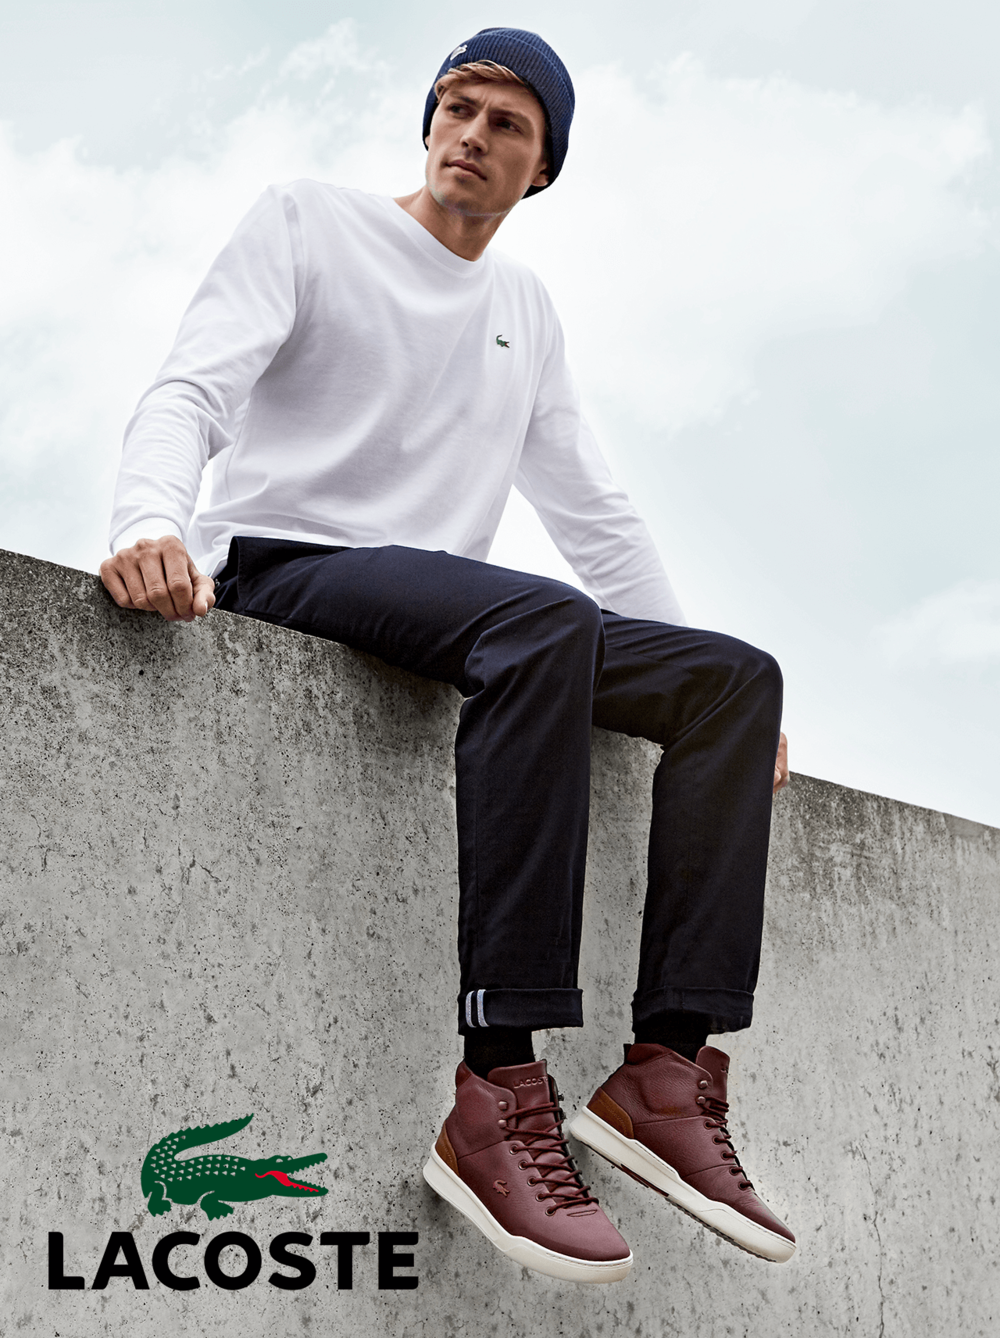 Lacoste x JD Sports<strong>Read More</strong>